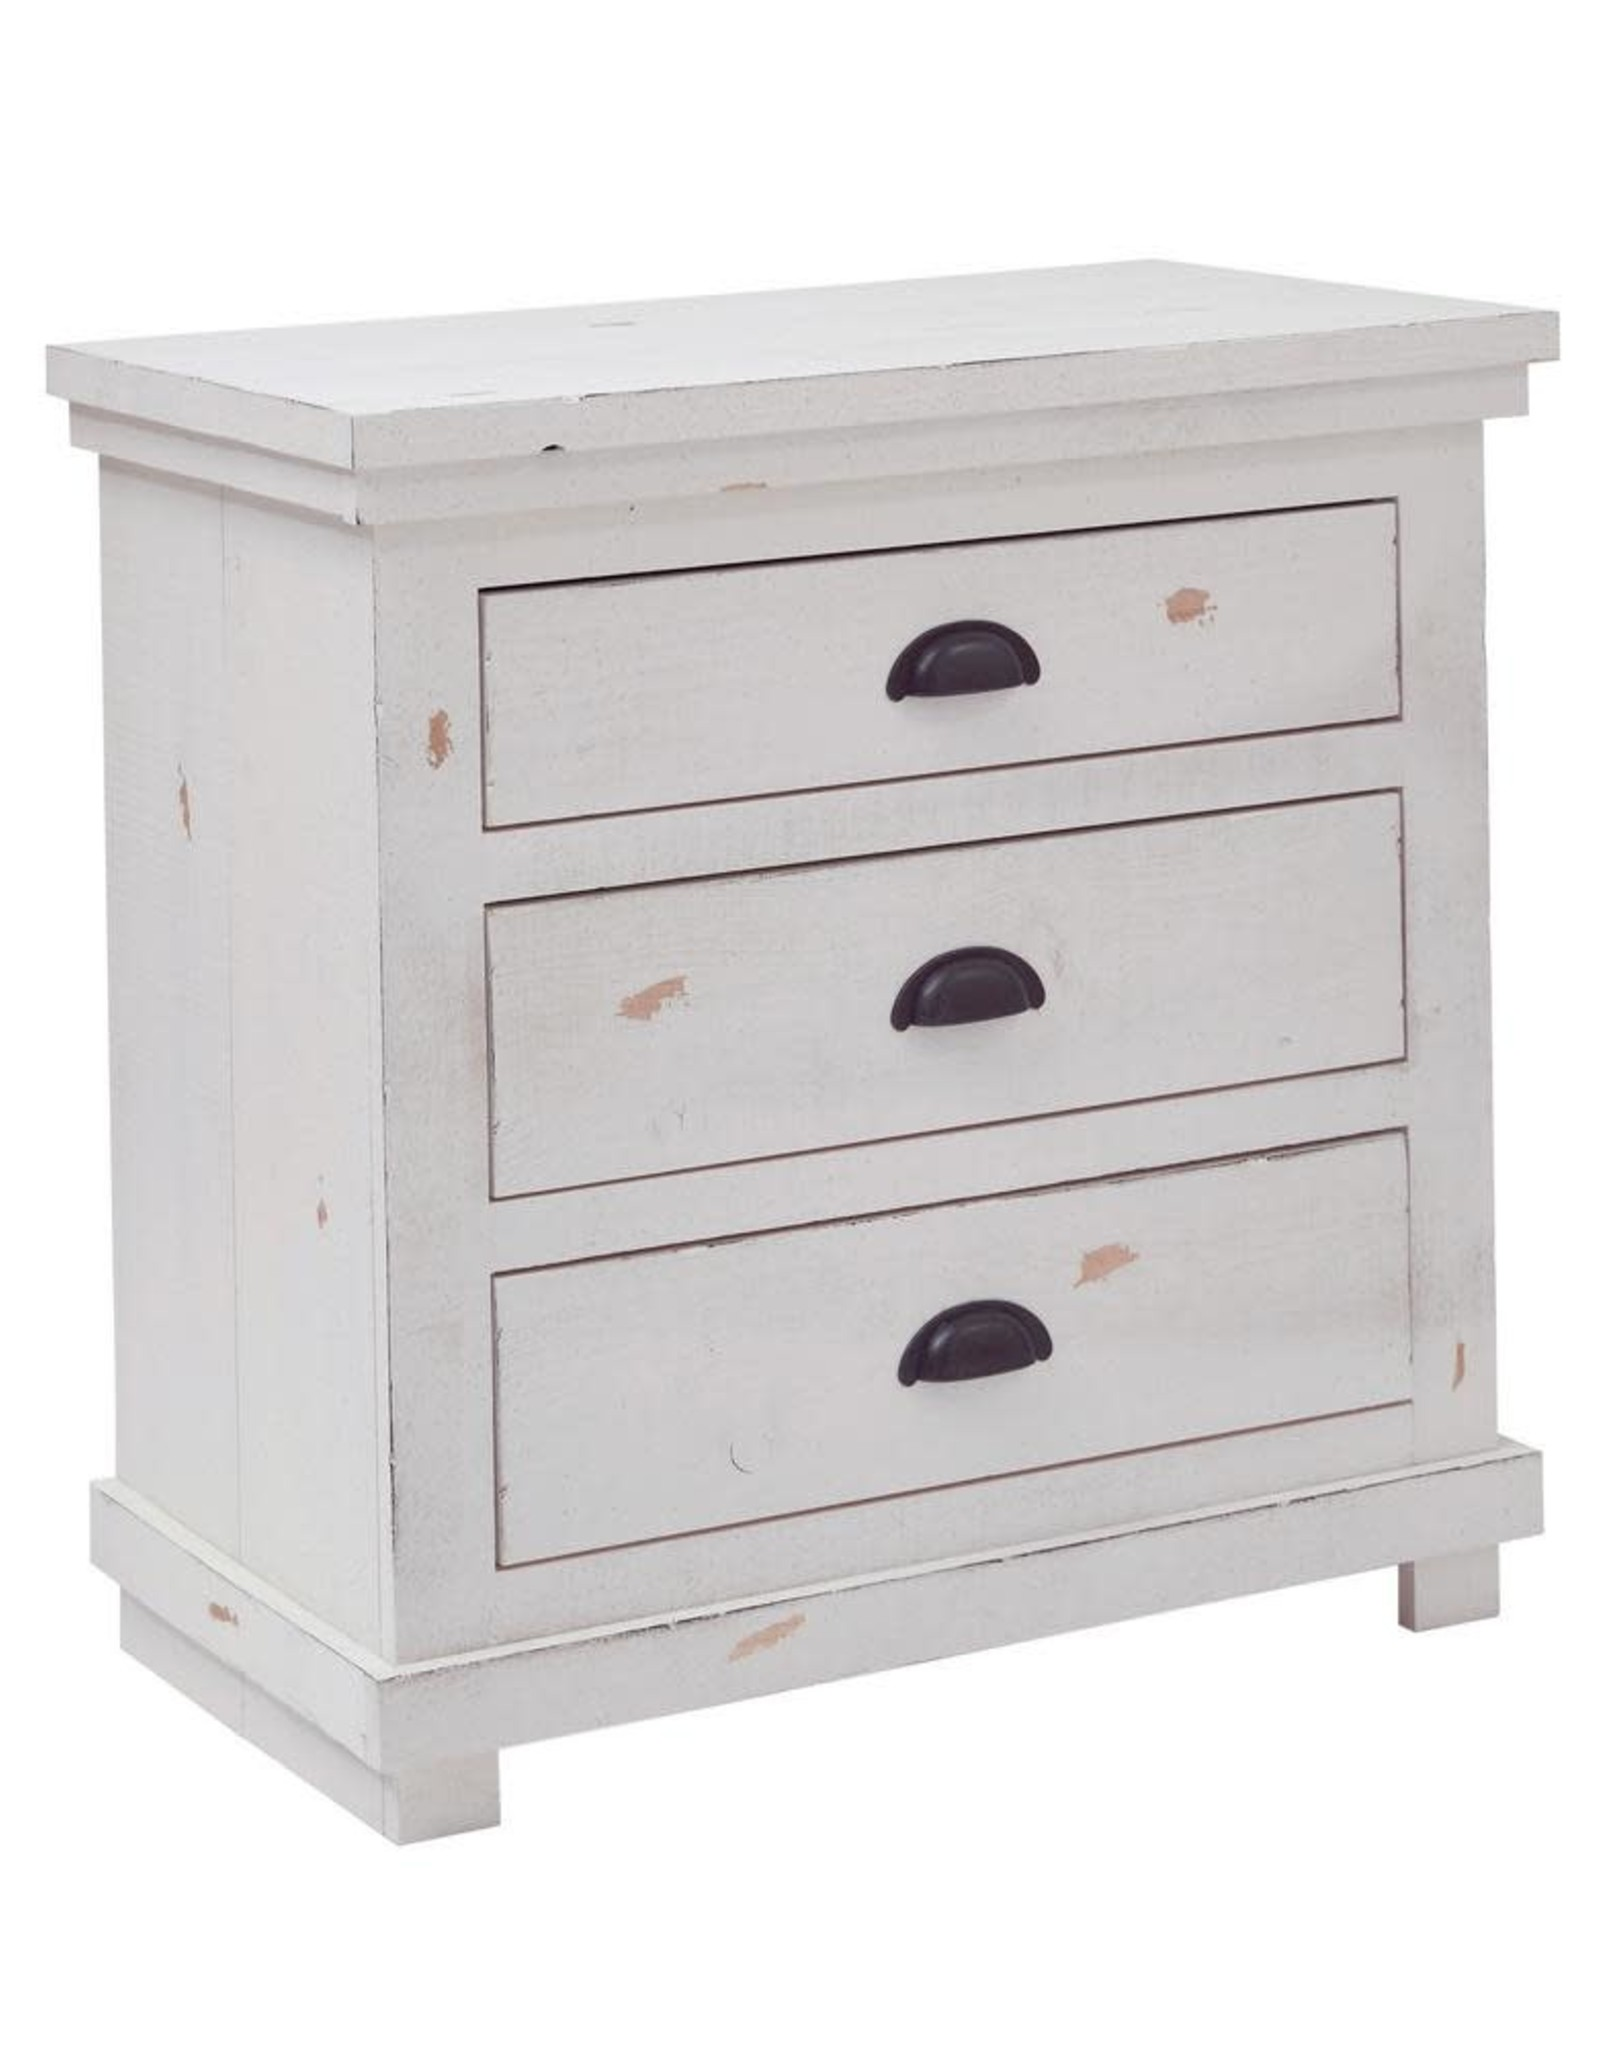 Willow 3-Drawer Distressed White Nightstand